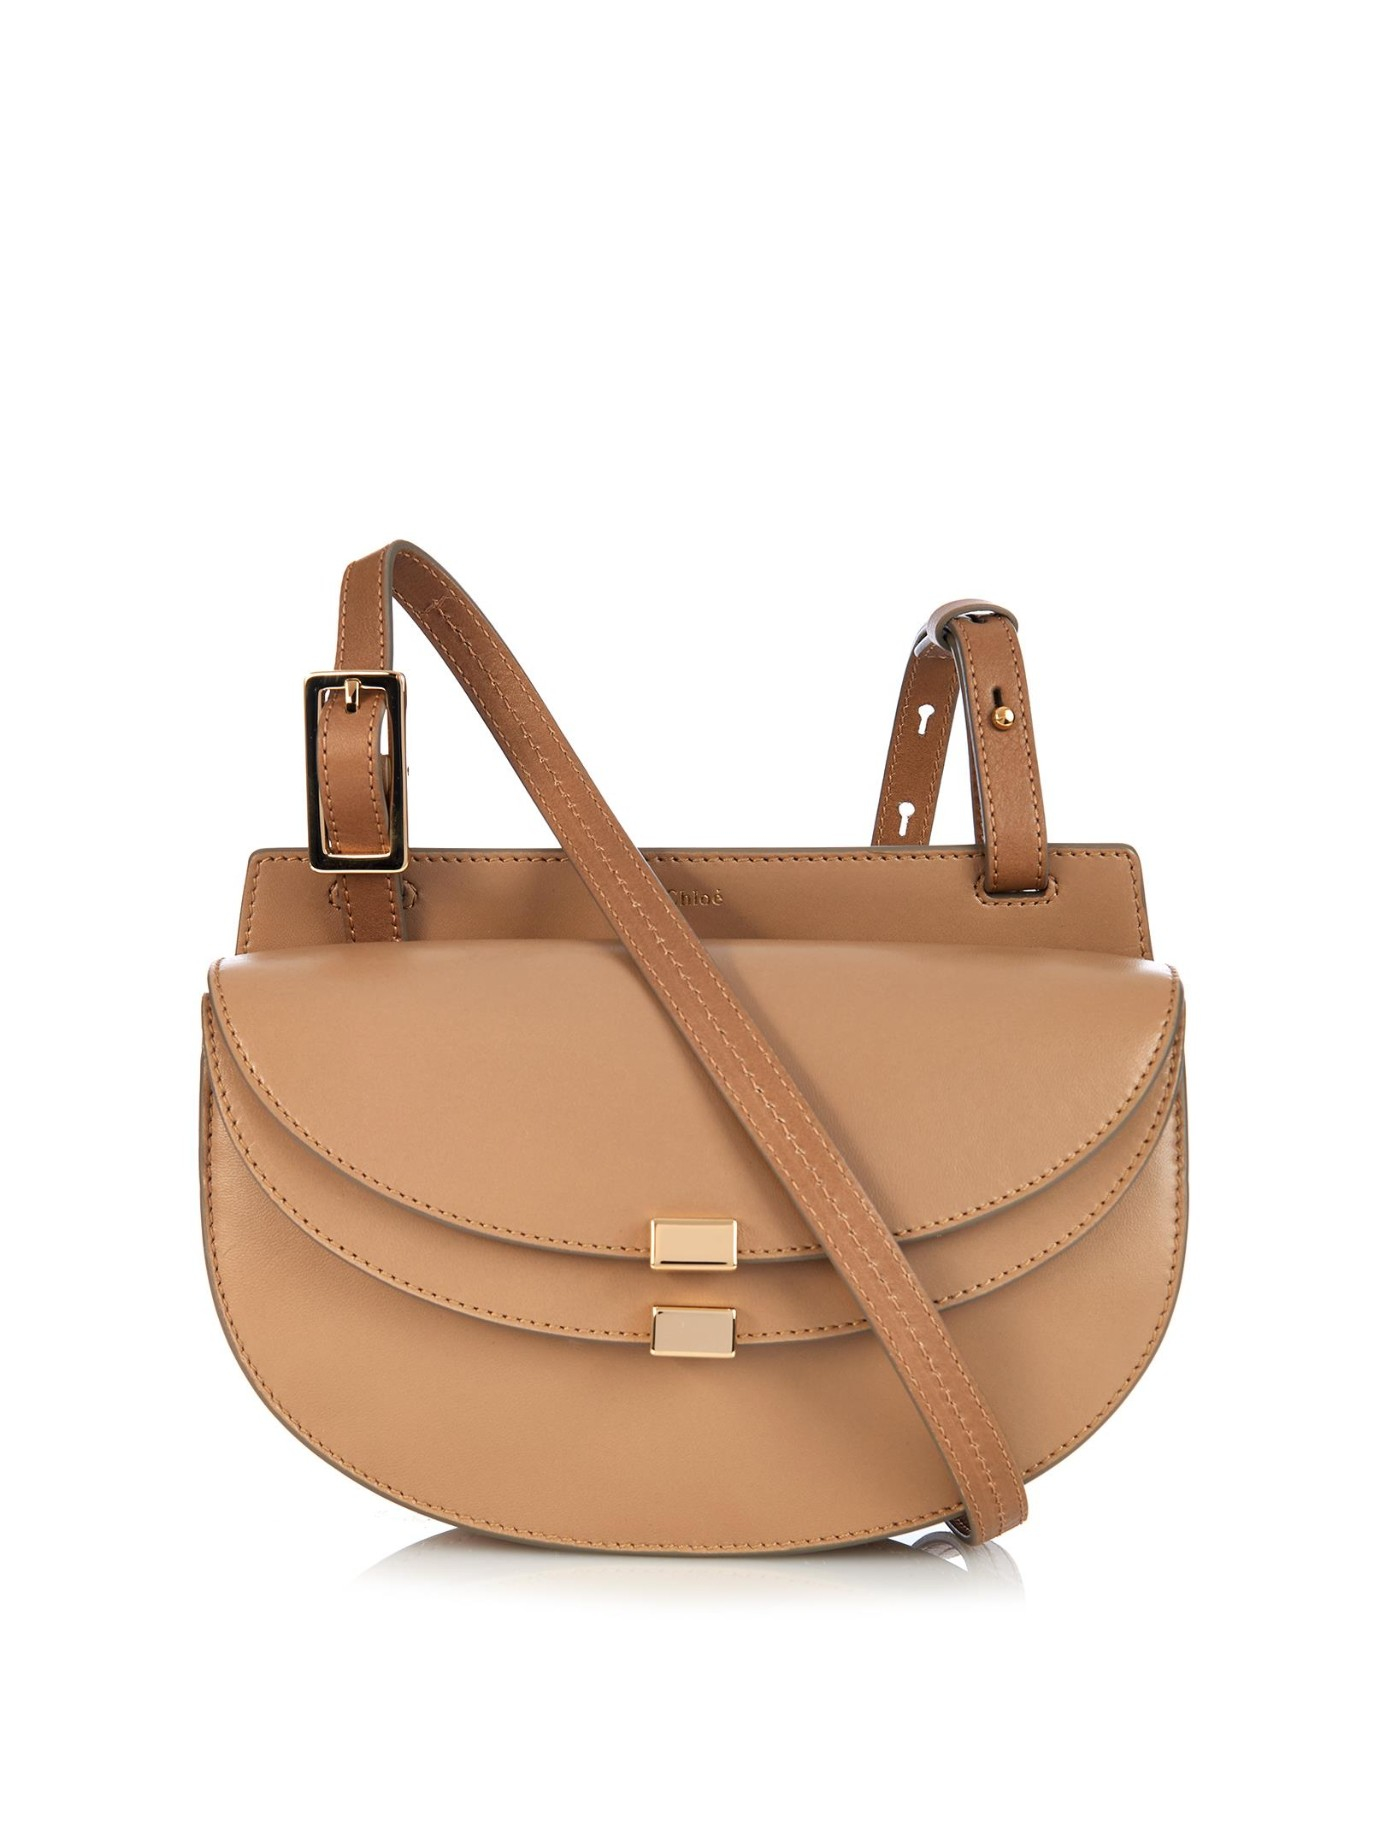 how to spot a fake chloe handbag - Chlo�� Georgia Mini Leather Cross-Body Bag in Brown (DARK BEIGE) | Lyst